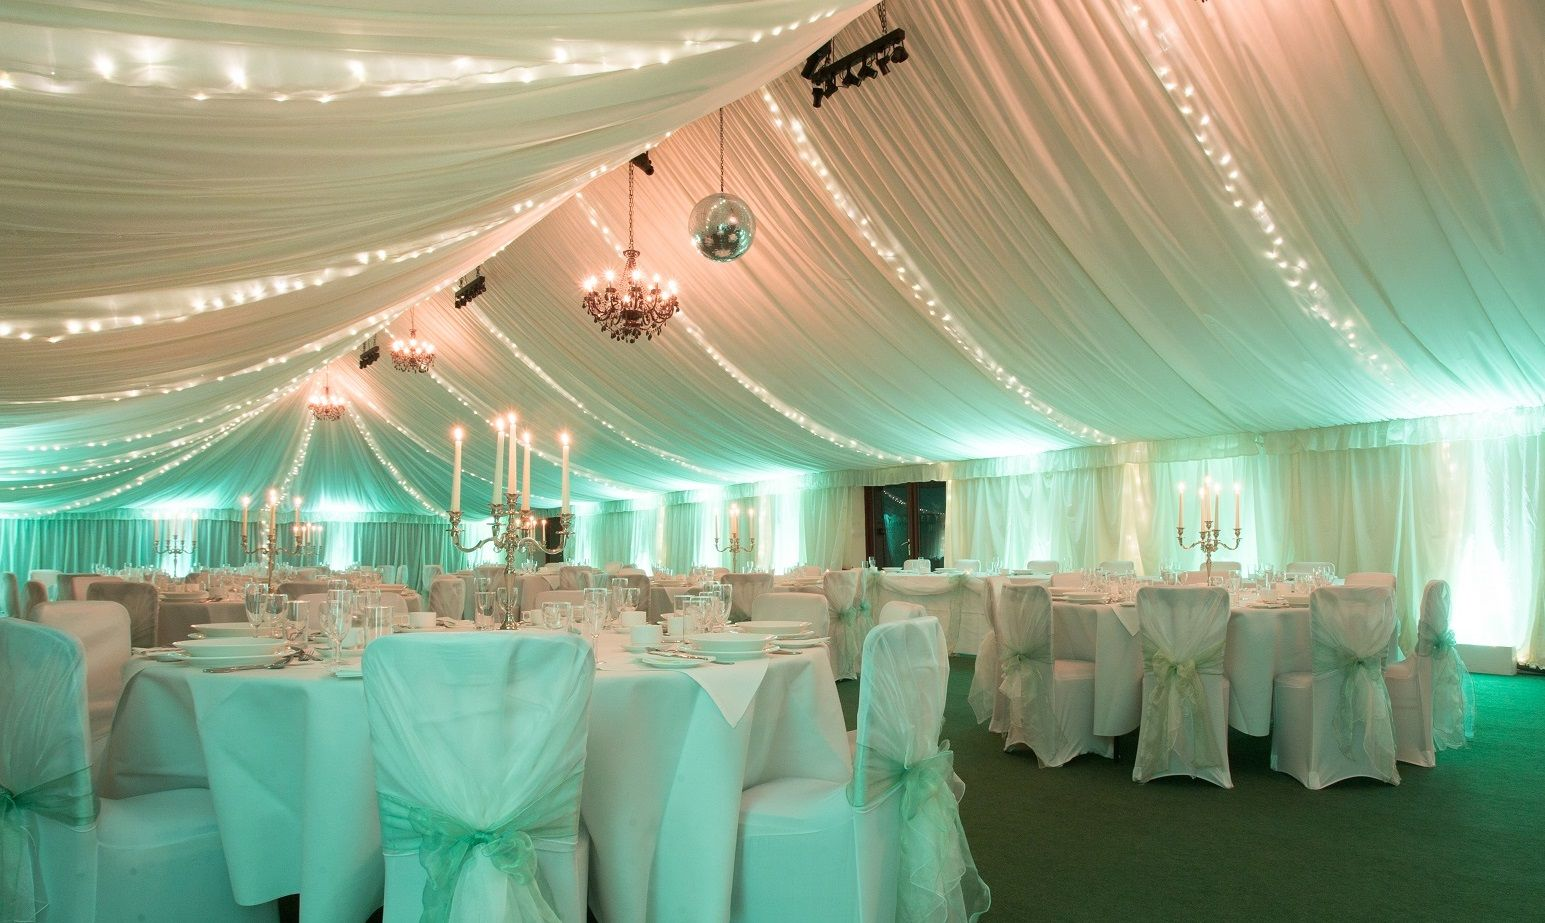 All Manor Of Events Suffolk Wedding Venues Yorkshire Wedding